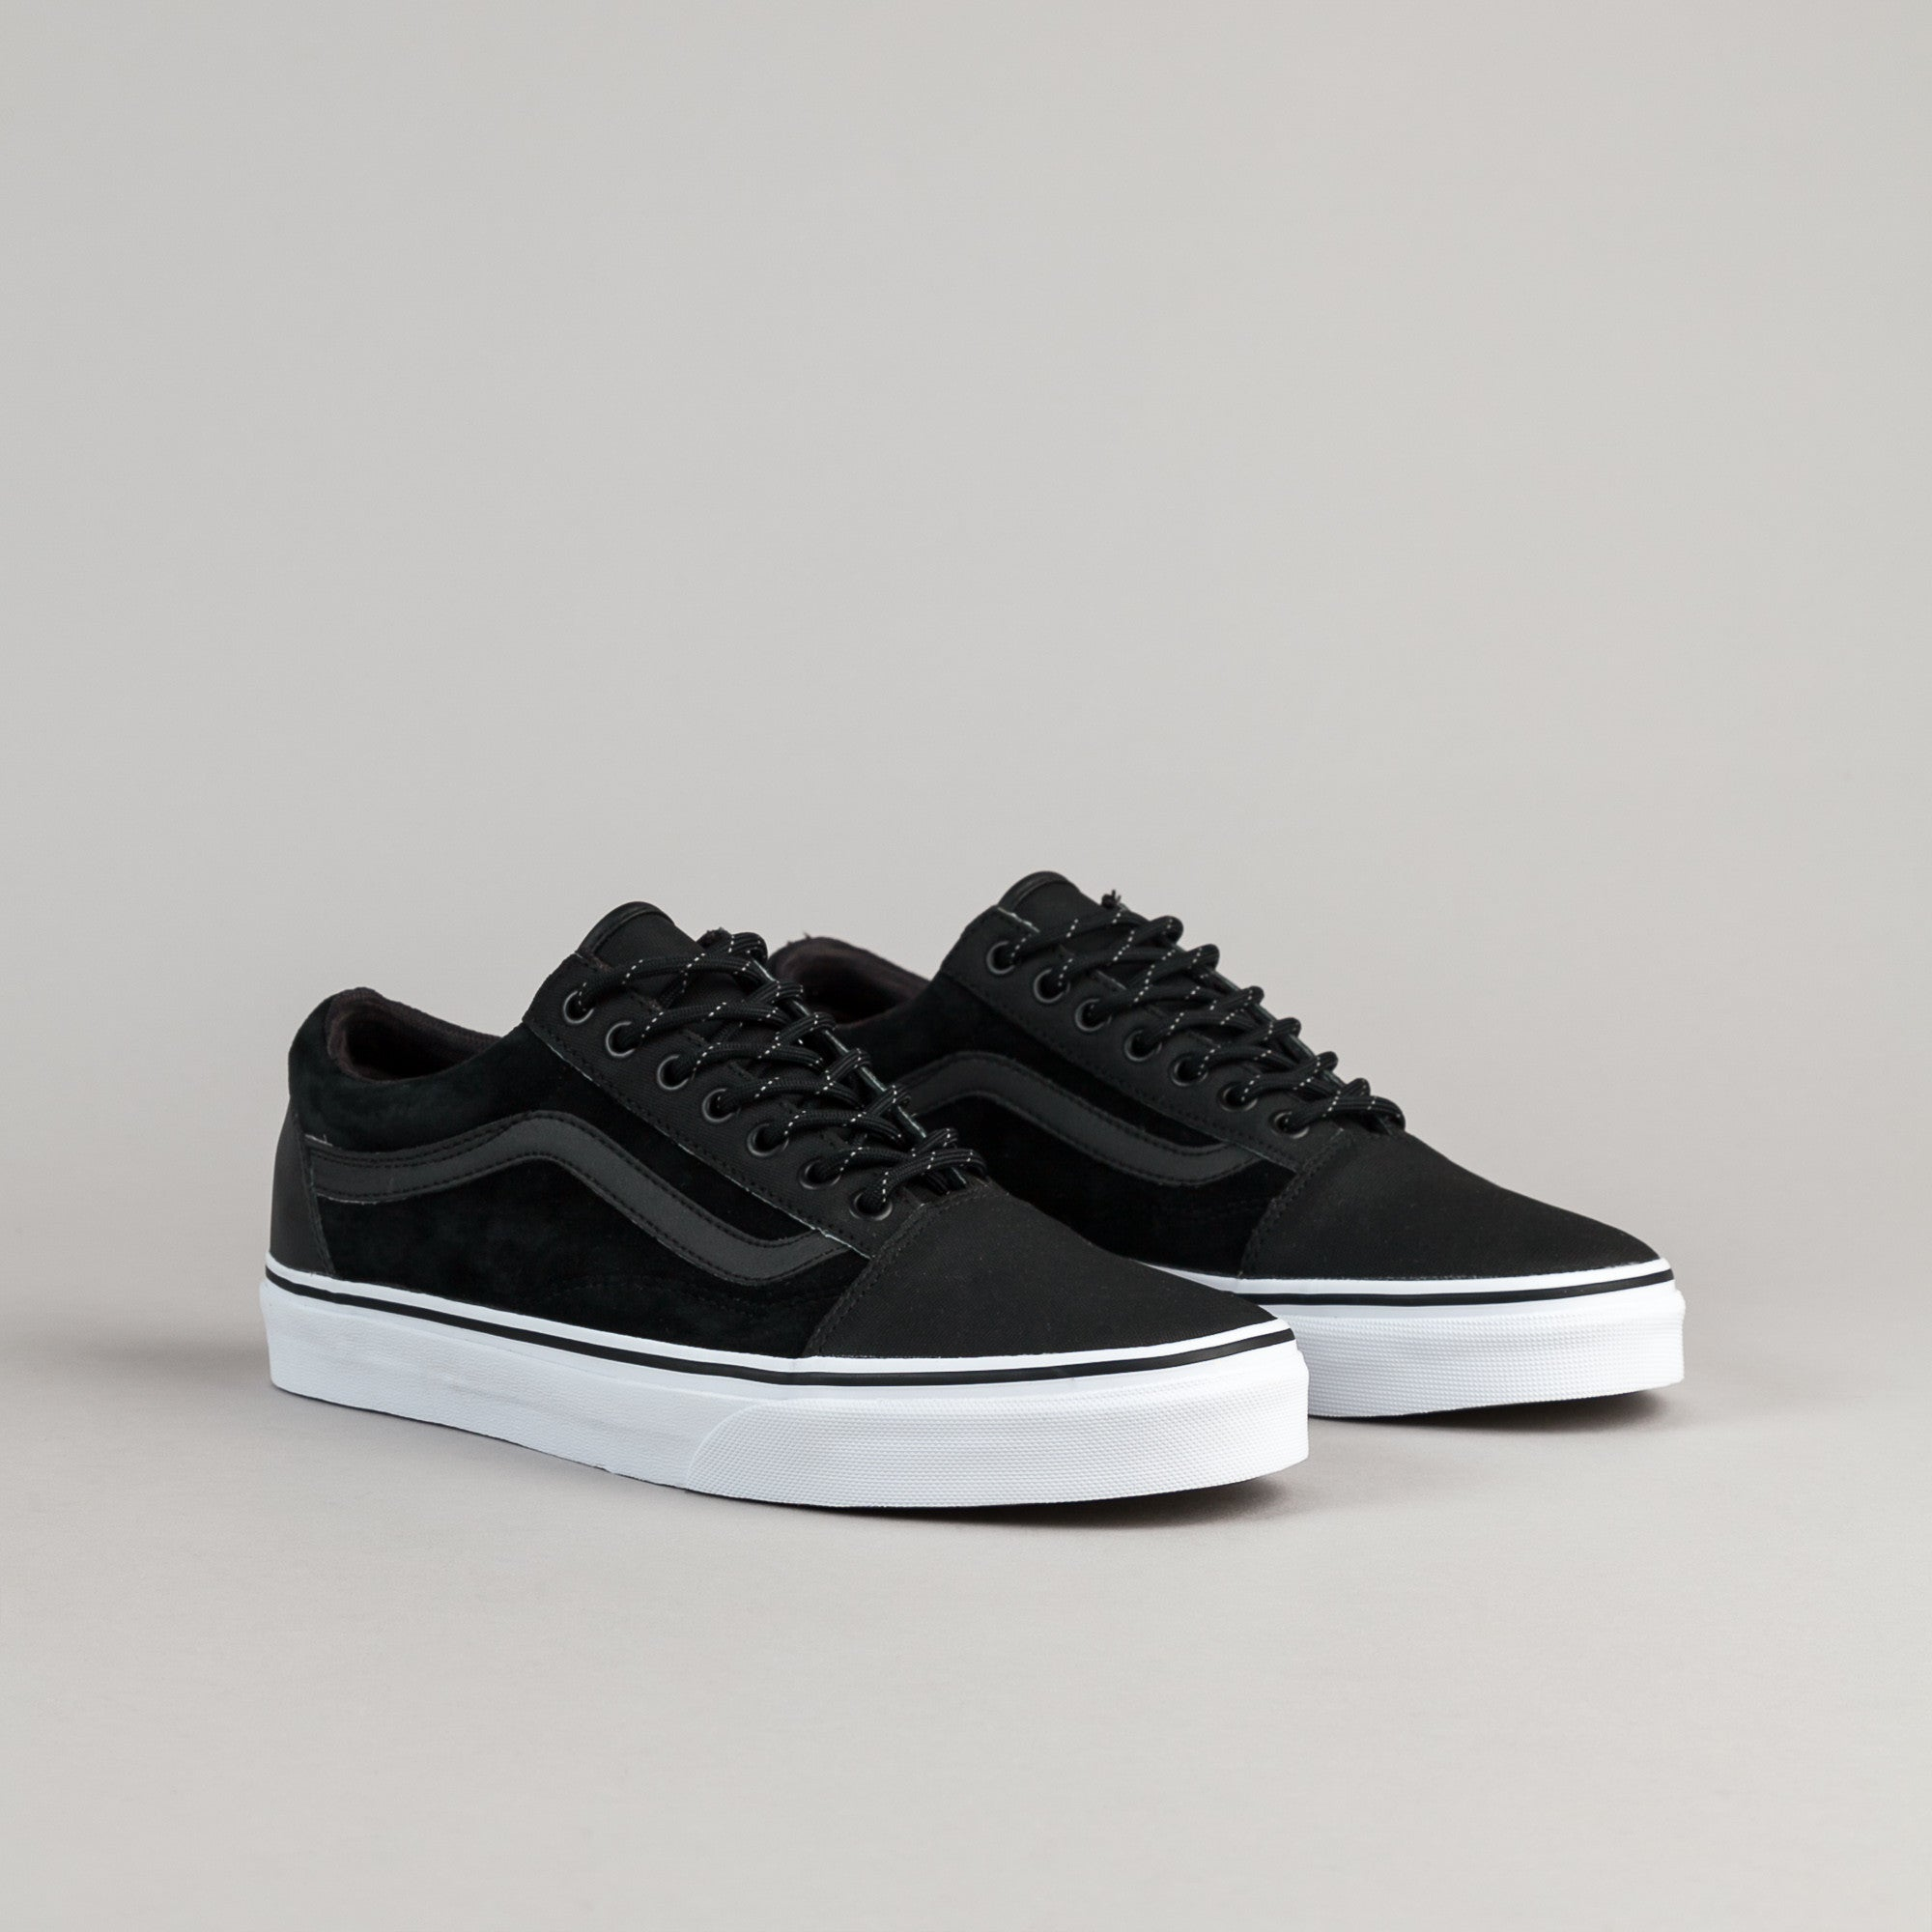 vans old skool reissue dx black leather